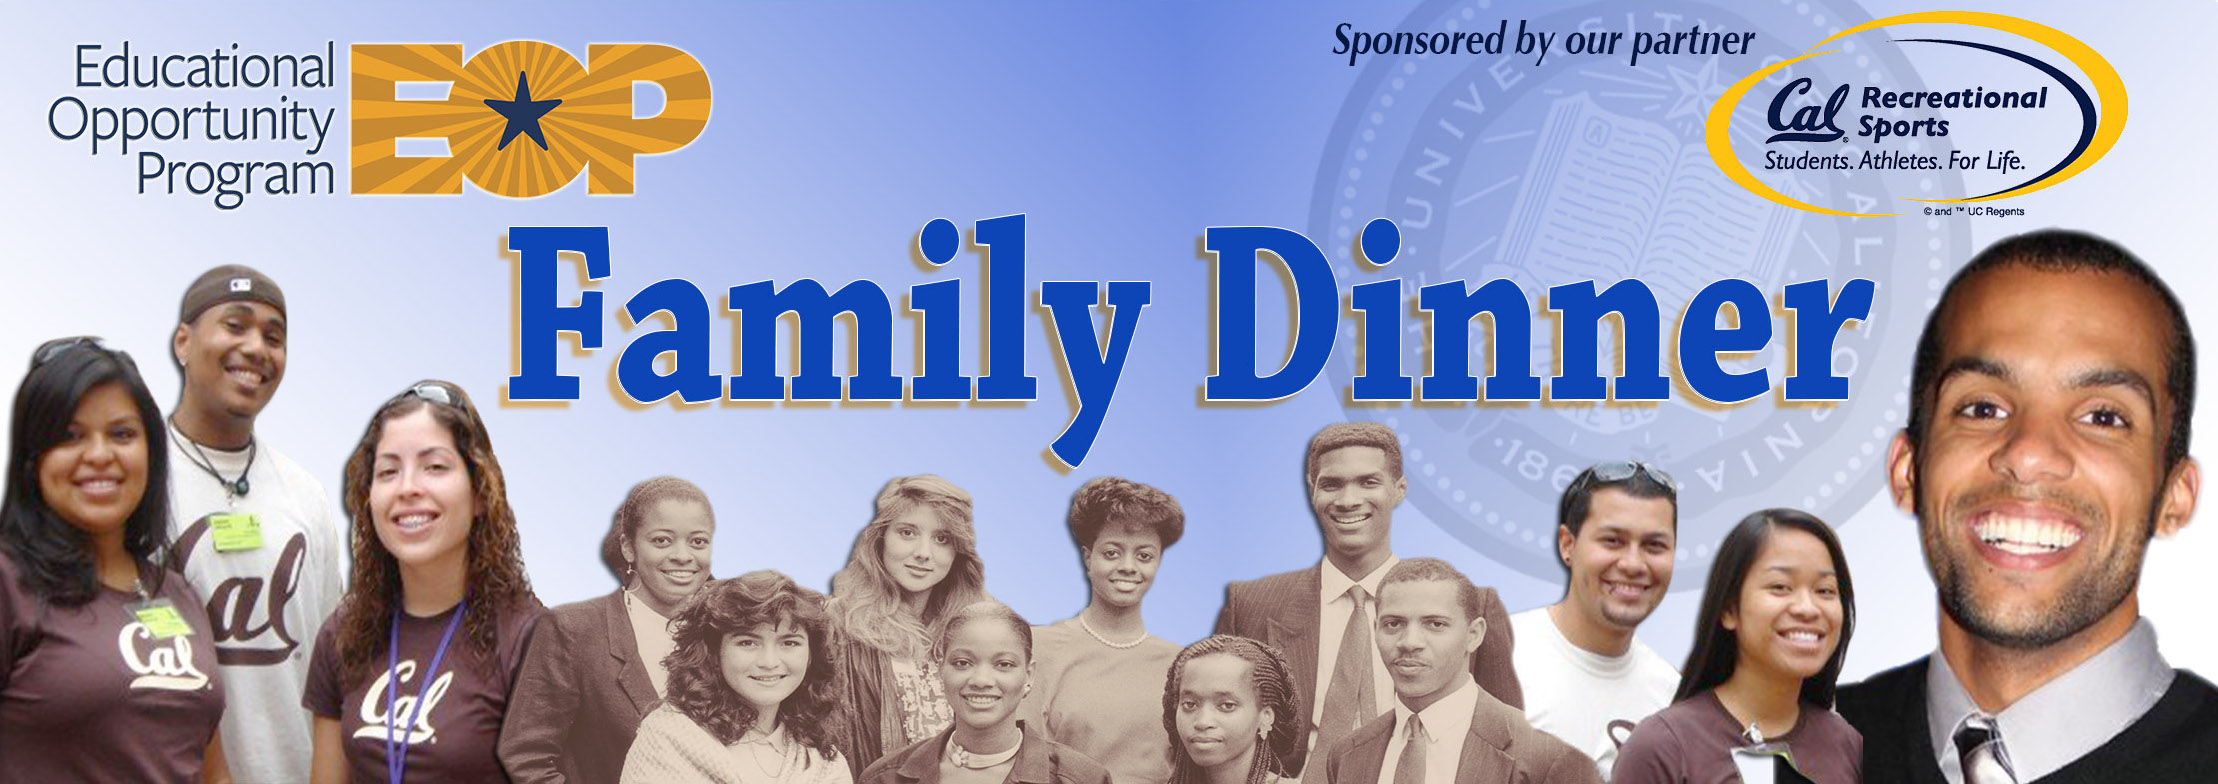 Help us celebrate and support EOP students! Join us on November 5th, 2015for the EOP Family Dinner! Click here to purchase your tickets, find more info, or make a gift!